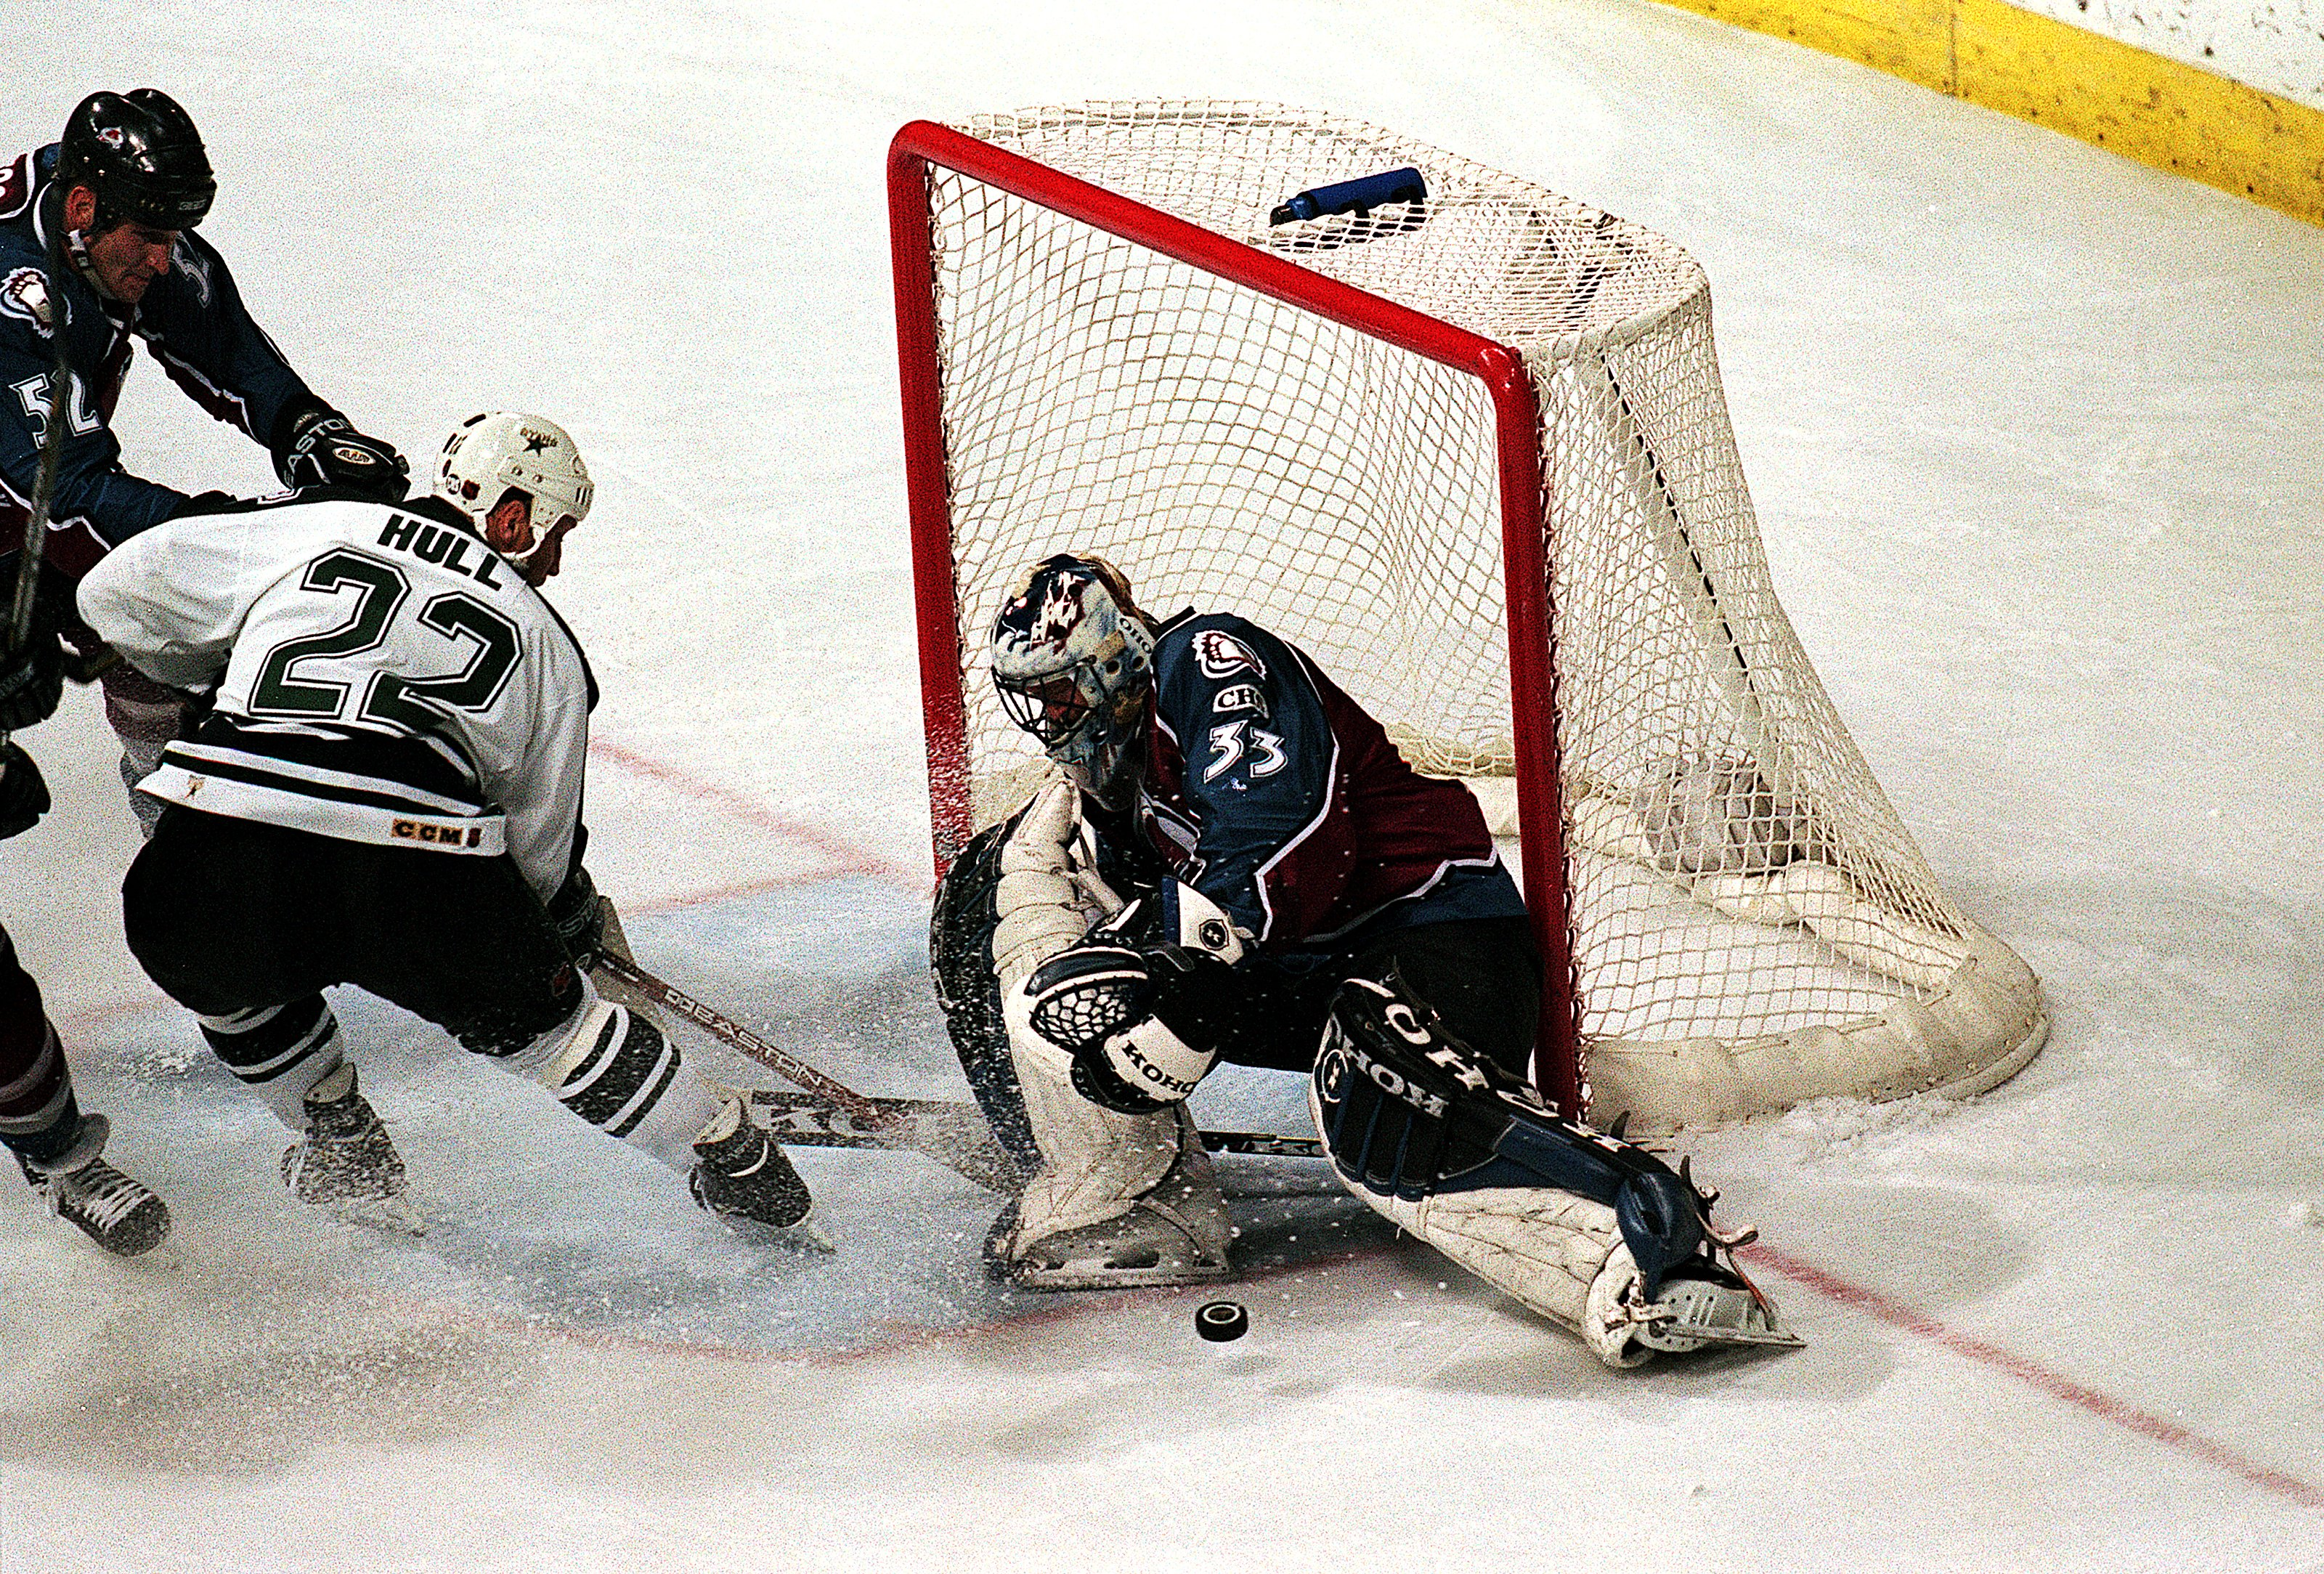 24 May 1999: Patrick Roy #33 of the Colorado Avalanche blocks the puck as Brett Hull #22 of the Dallas Stars tries to score during the Western Conference Finals at the Reunion Arena in Dallas, Texas. The Stars defeated the Avalanche 4-2. Mandatory Credit: